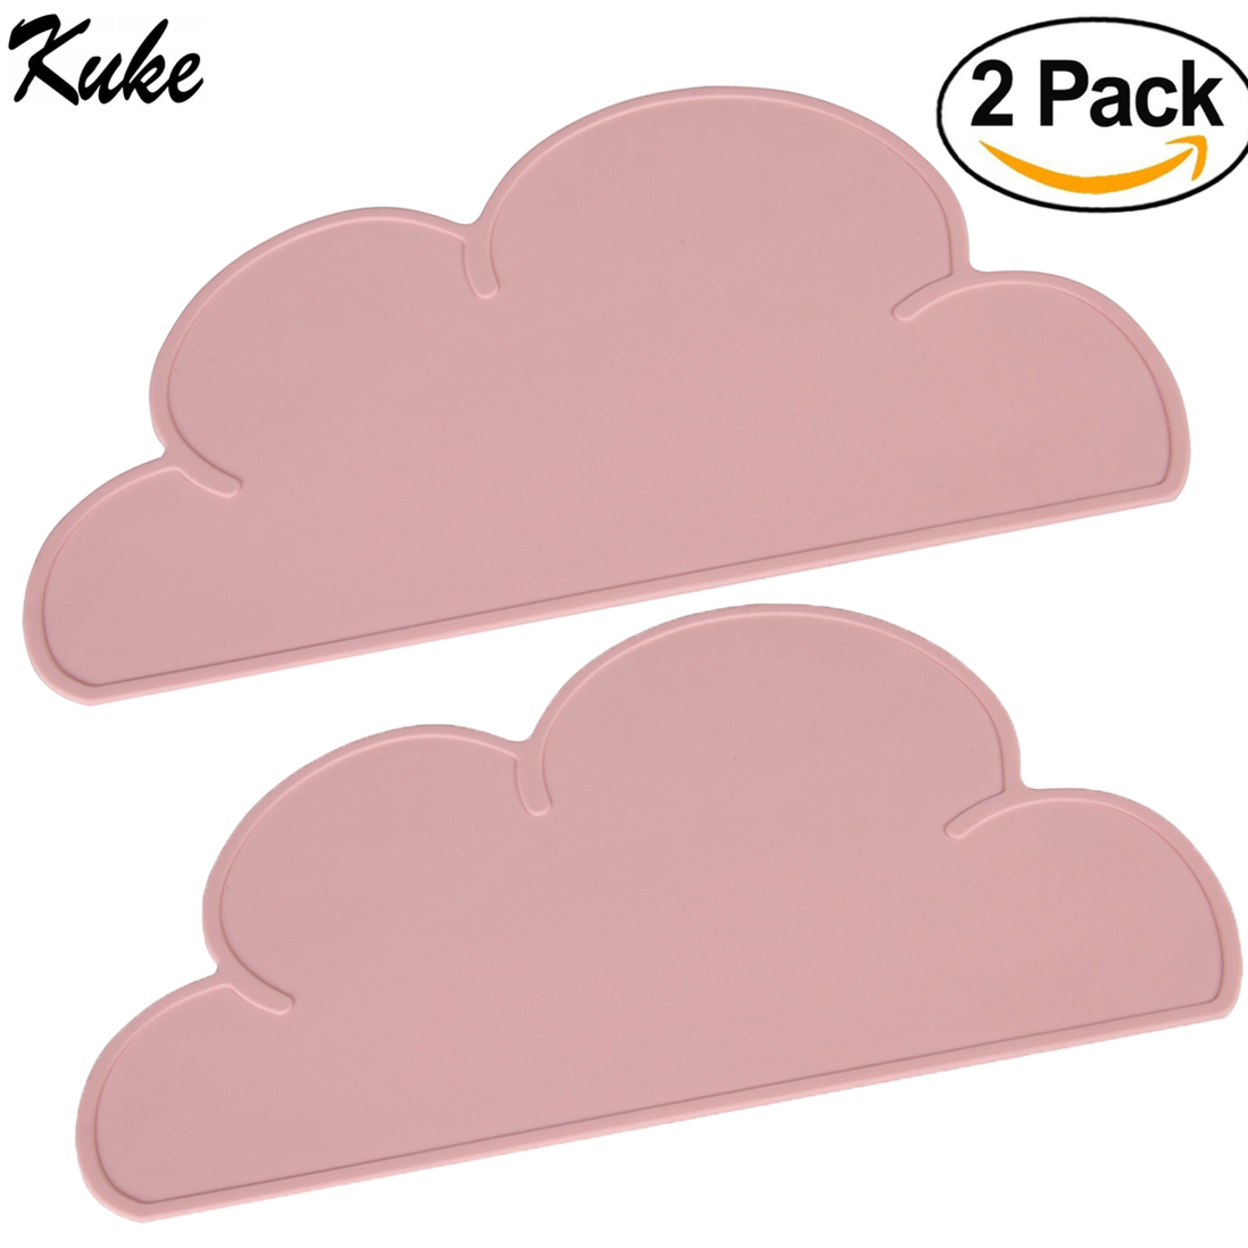 Kuke 2 Pcs Soft Silicone Cloud Shape Placemats Meal Mats for Children Baby Kid (Pink) 59c4be3b2a00e458ee098fdd